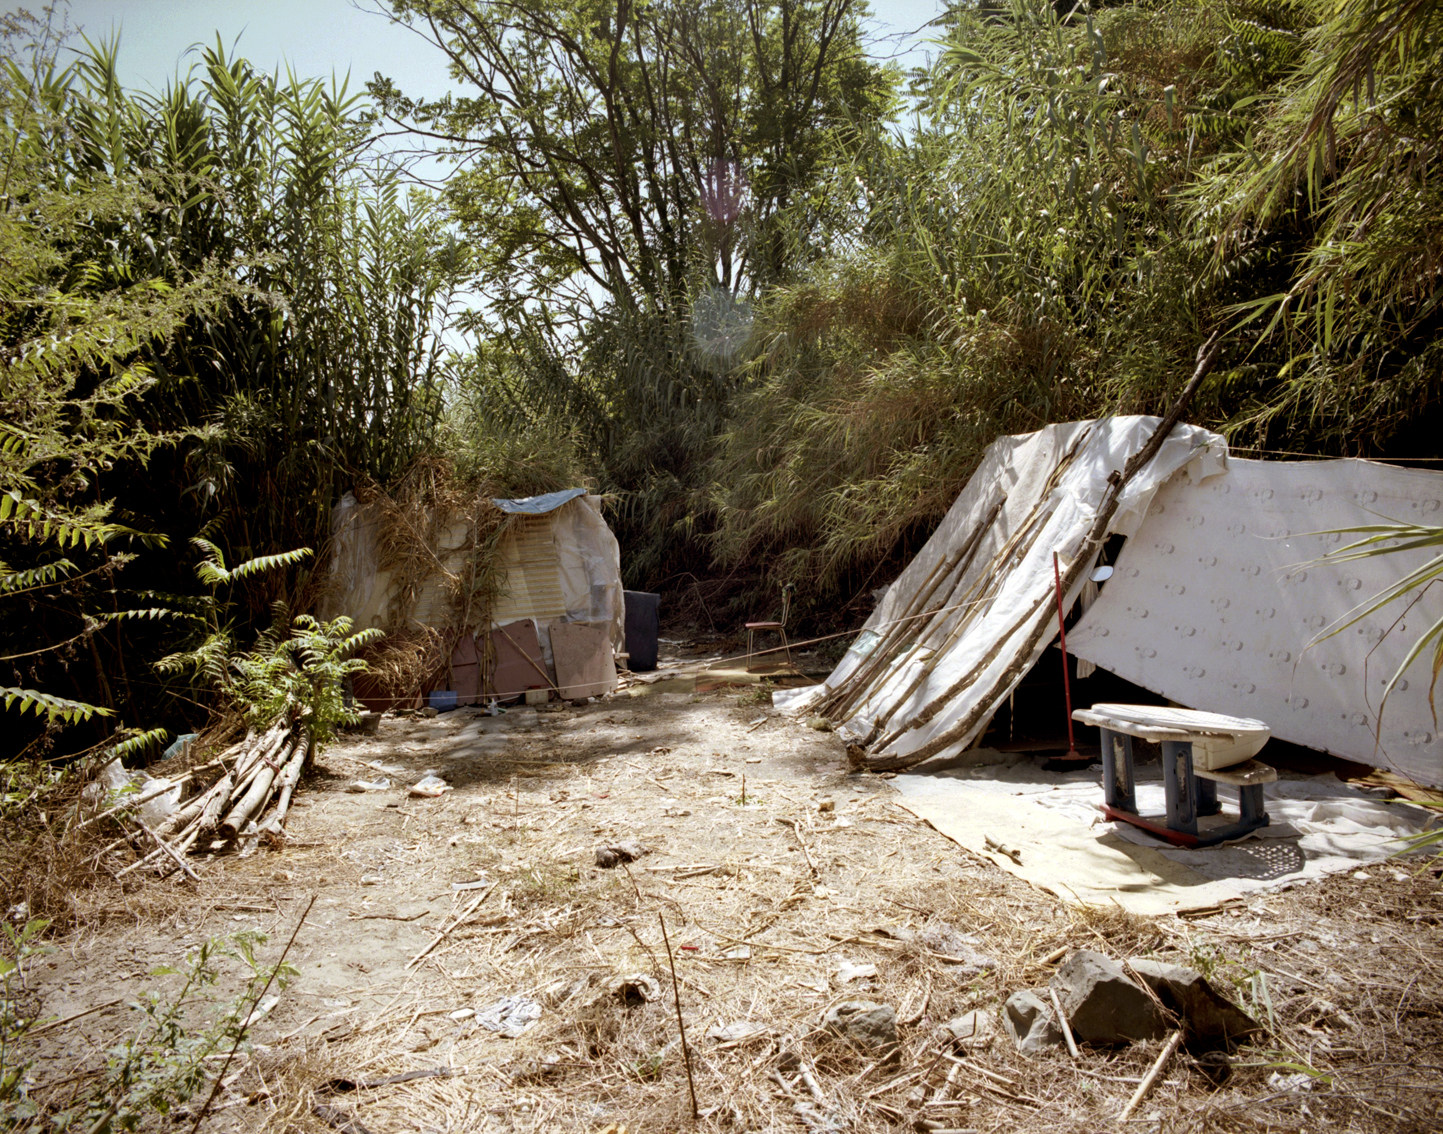 Hidden camp in Rome : Hidden camp realized by illegal immigrants, along Aniene river's banks in Rome.